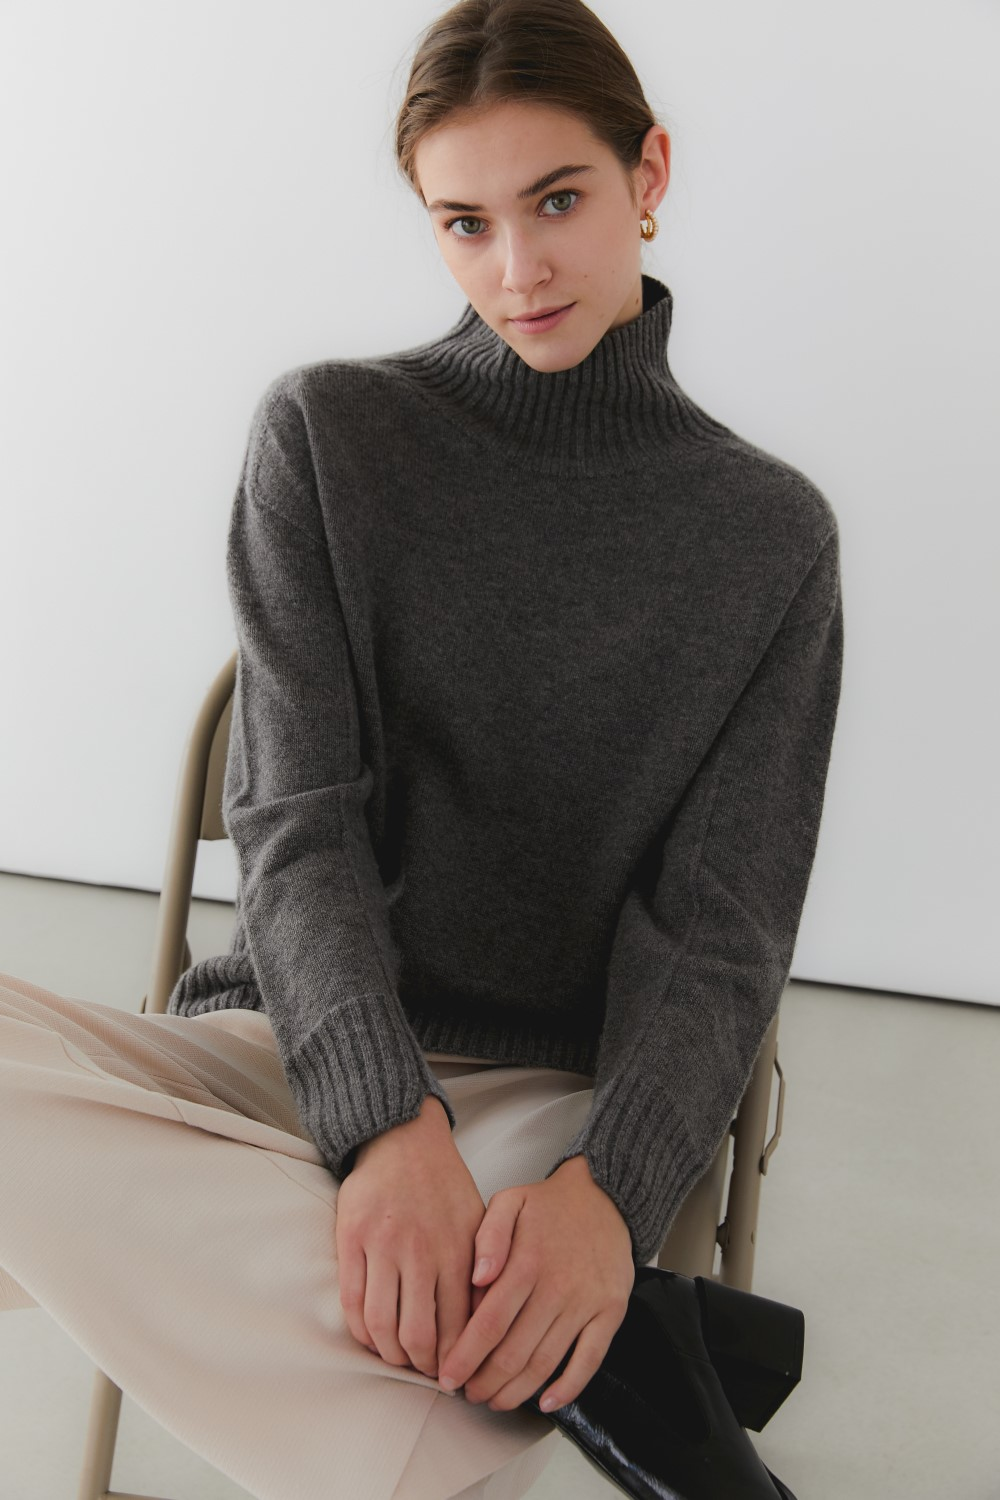 프리미엄 캐시미어 100 풀오버 [Pure cashmere100 whole-garment knitting turtleneck pullover - Warm graybrown]